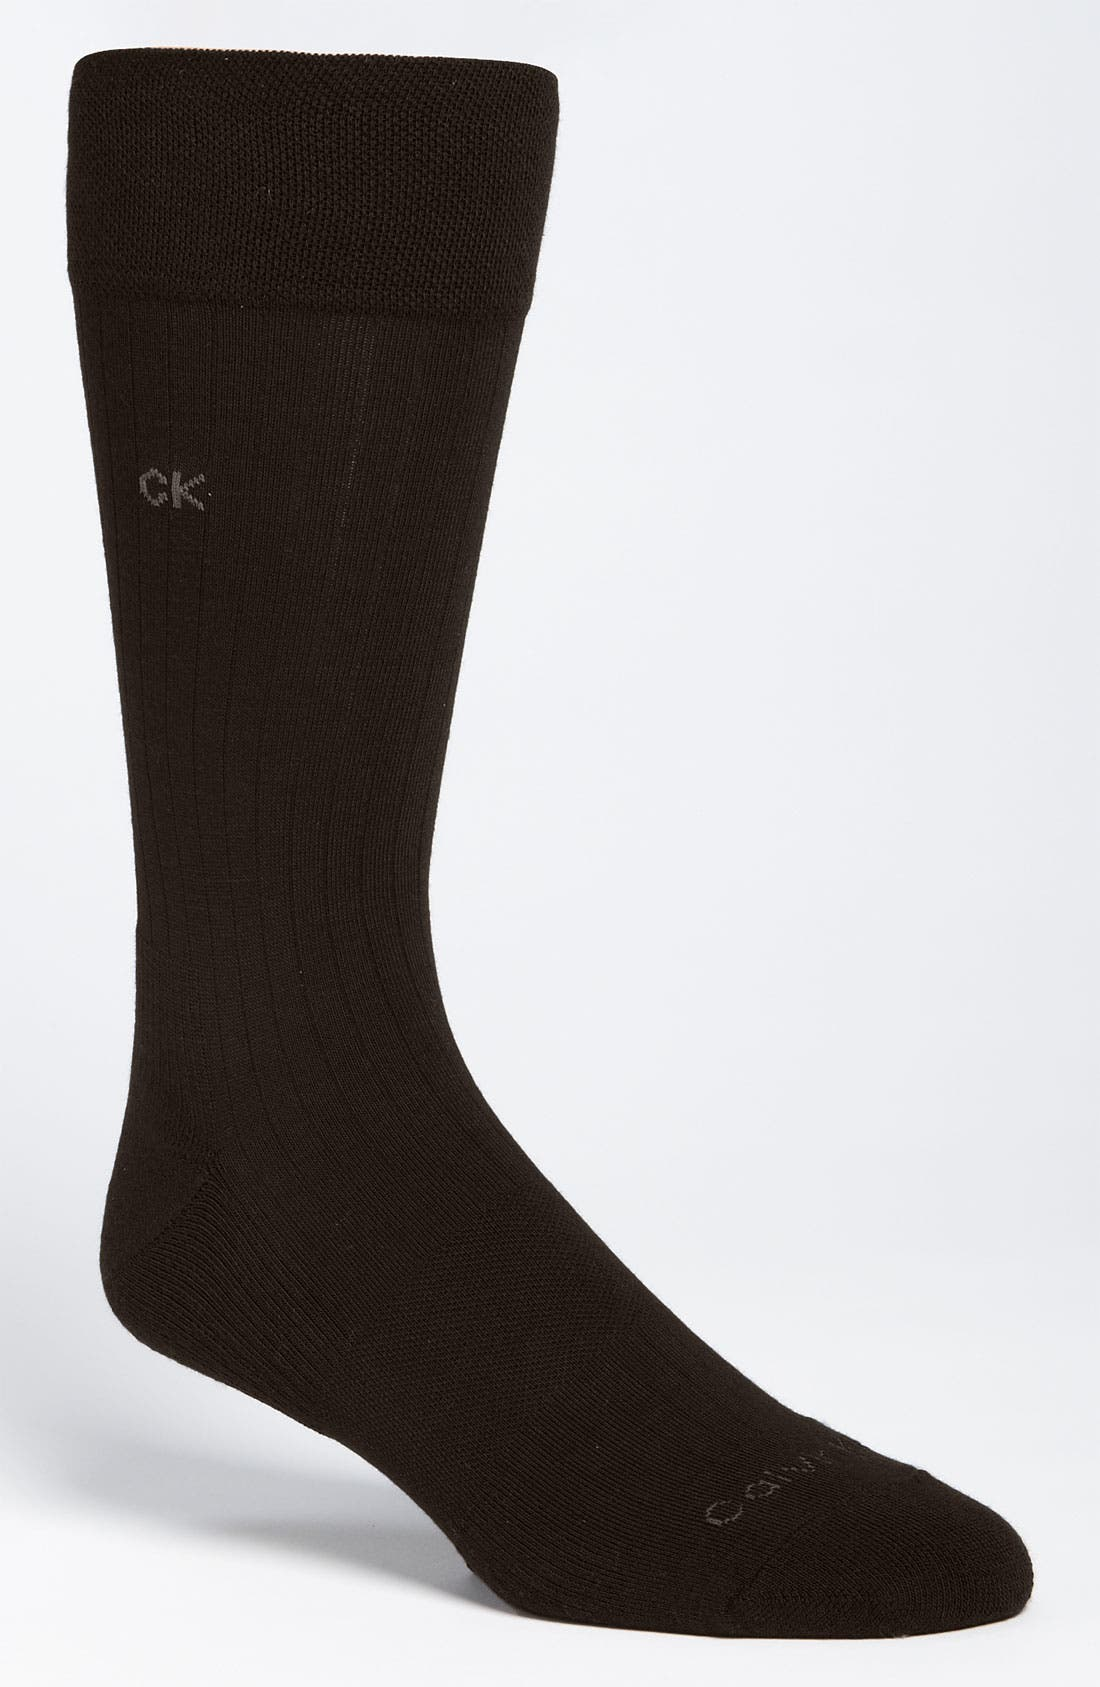 Alternate Image 1 Selected - Calvin Klein 'Ultra Fit' Socks